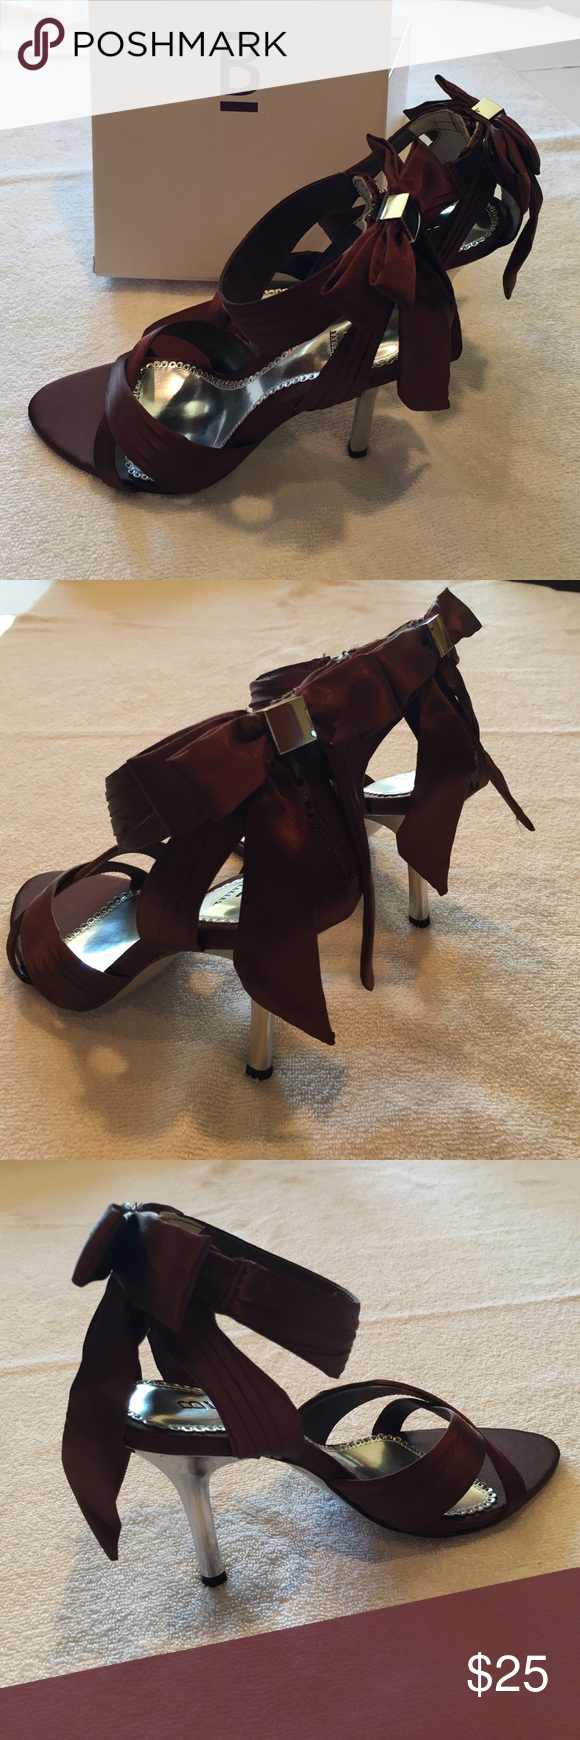 """Bakers High Heels Brown satiny 4"""" Heels. Zipper and snap back closure hidden by a bow. Silver heel. Never worn. Bakers Shoes Heels"""